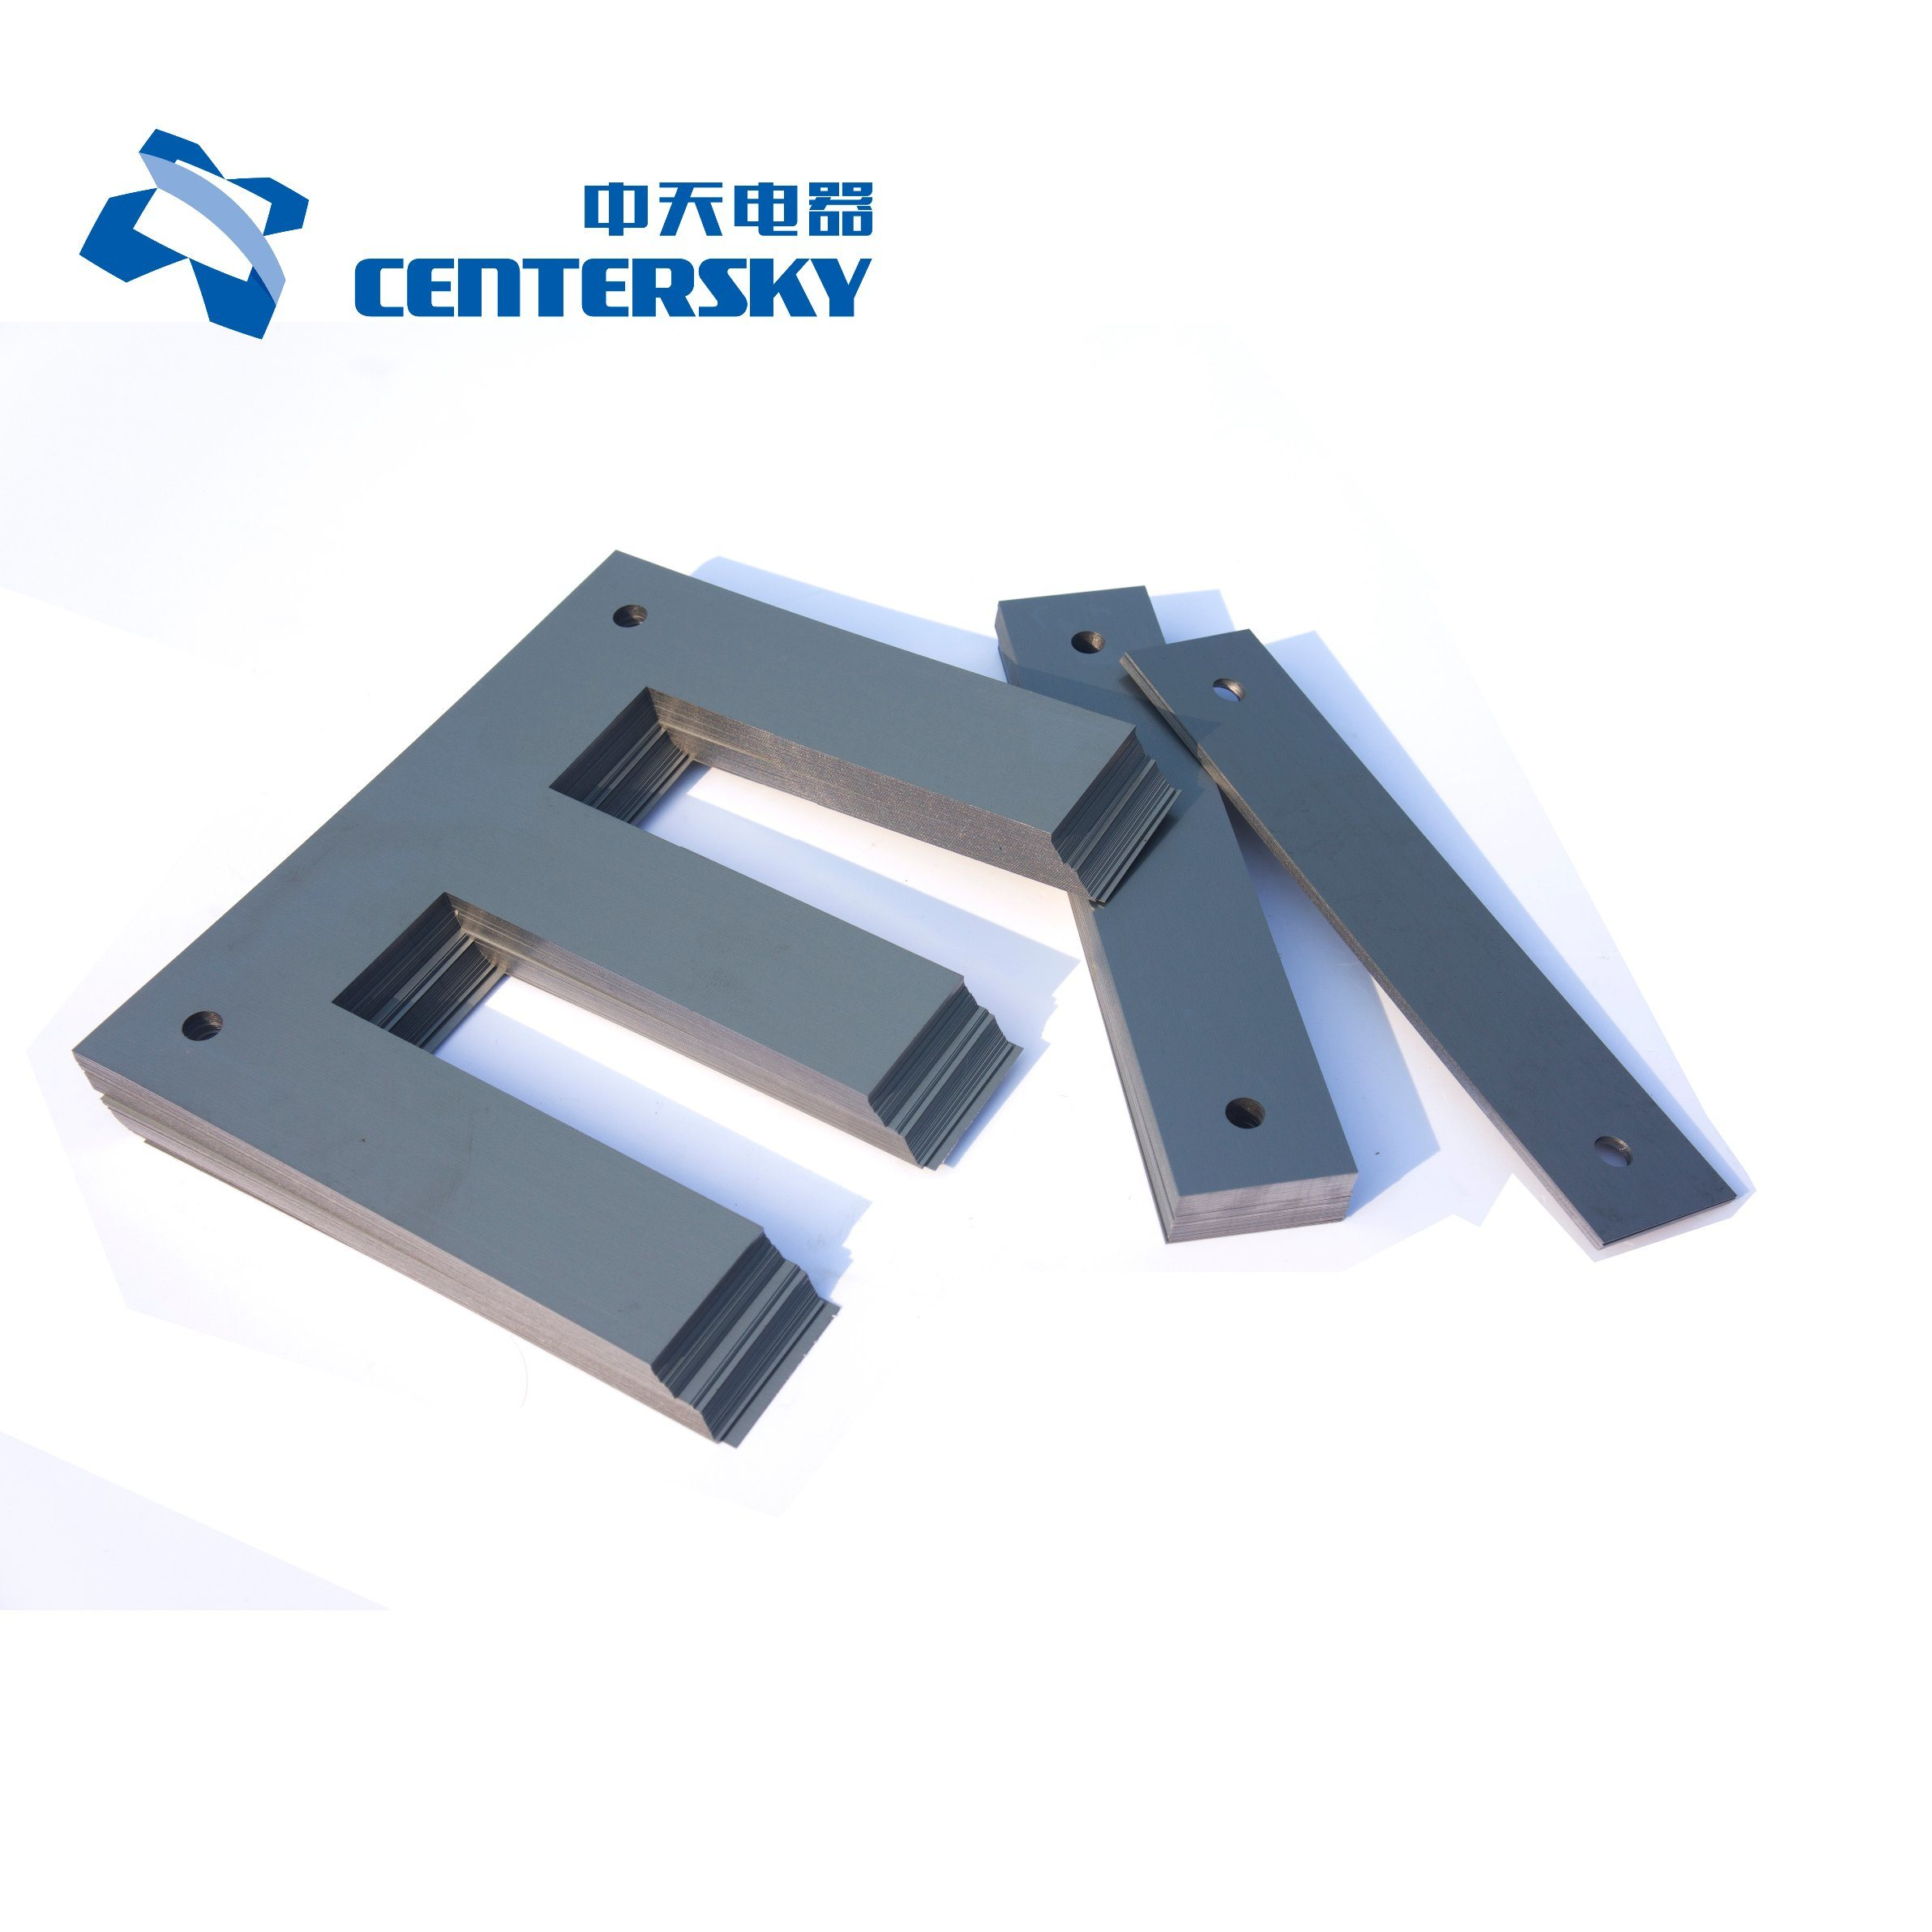 Centersky Silicon Steel Ei Iron Core Lamination in Electronic